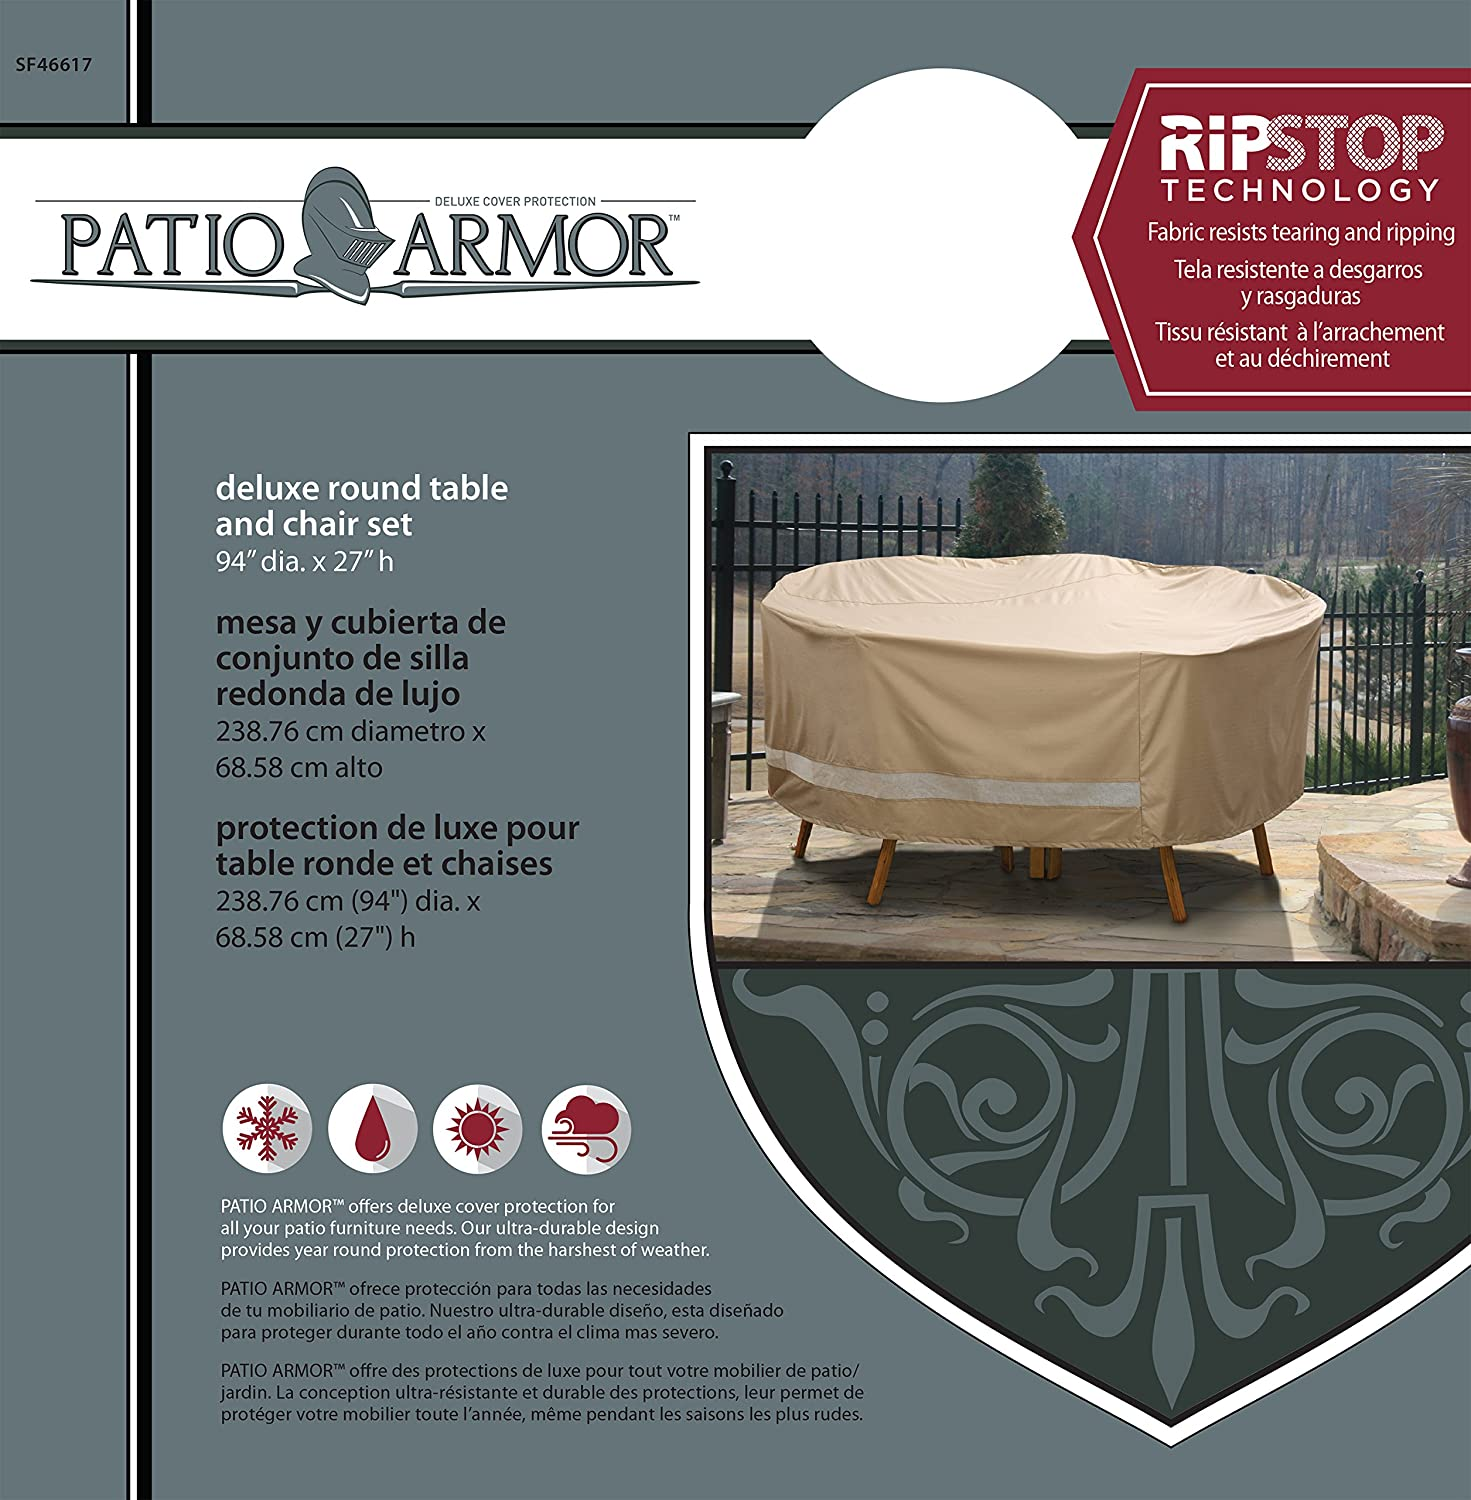 Amazon.com : Sure Fit Patio Armour Ripstop Deluxe Round Table and ...